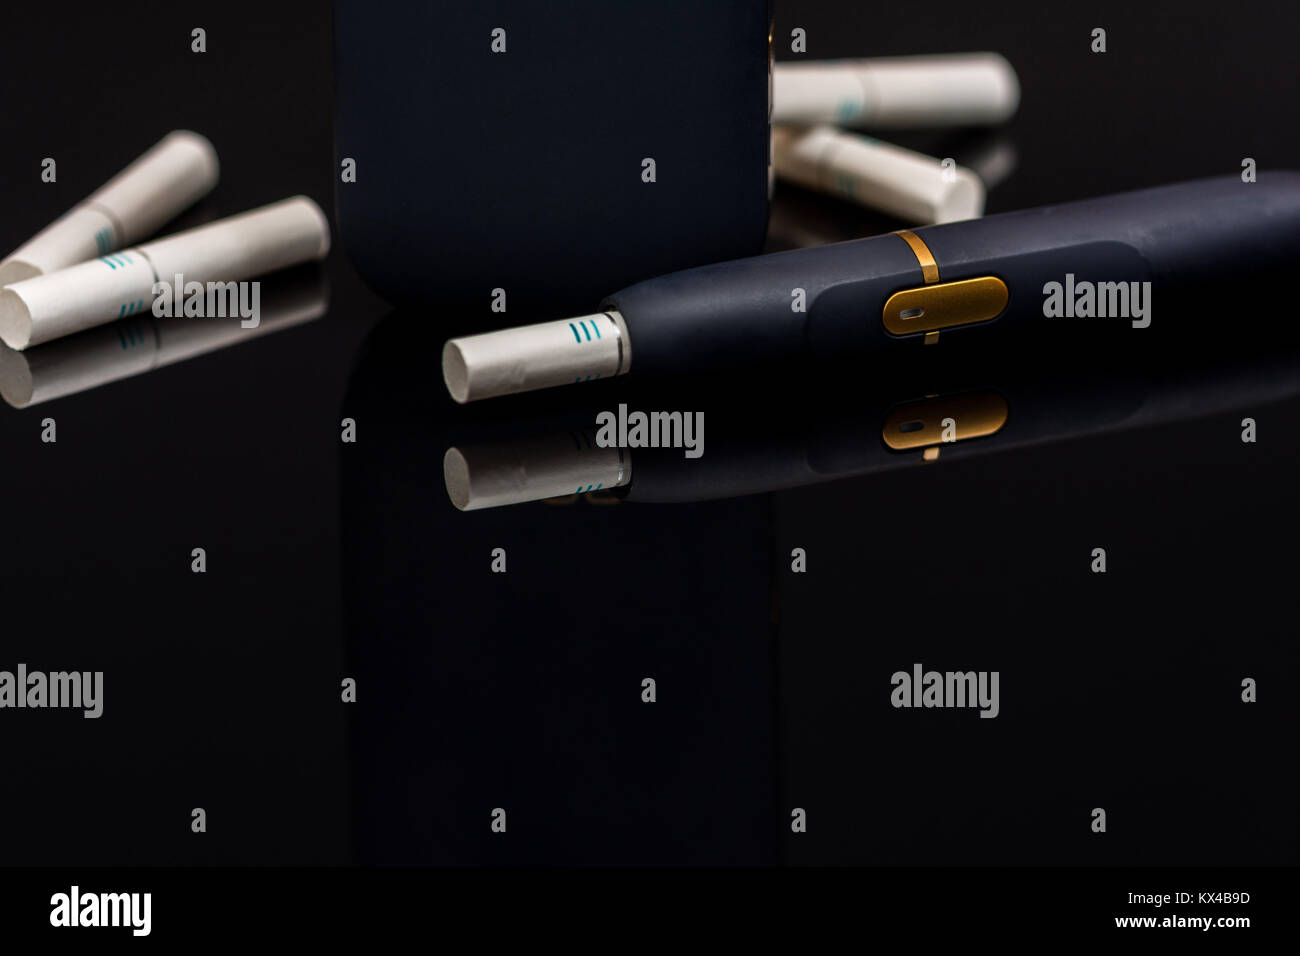 Electronic cigarette, tobacco heating system  on black background - Stock Image